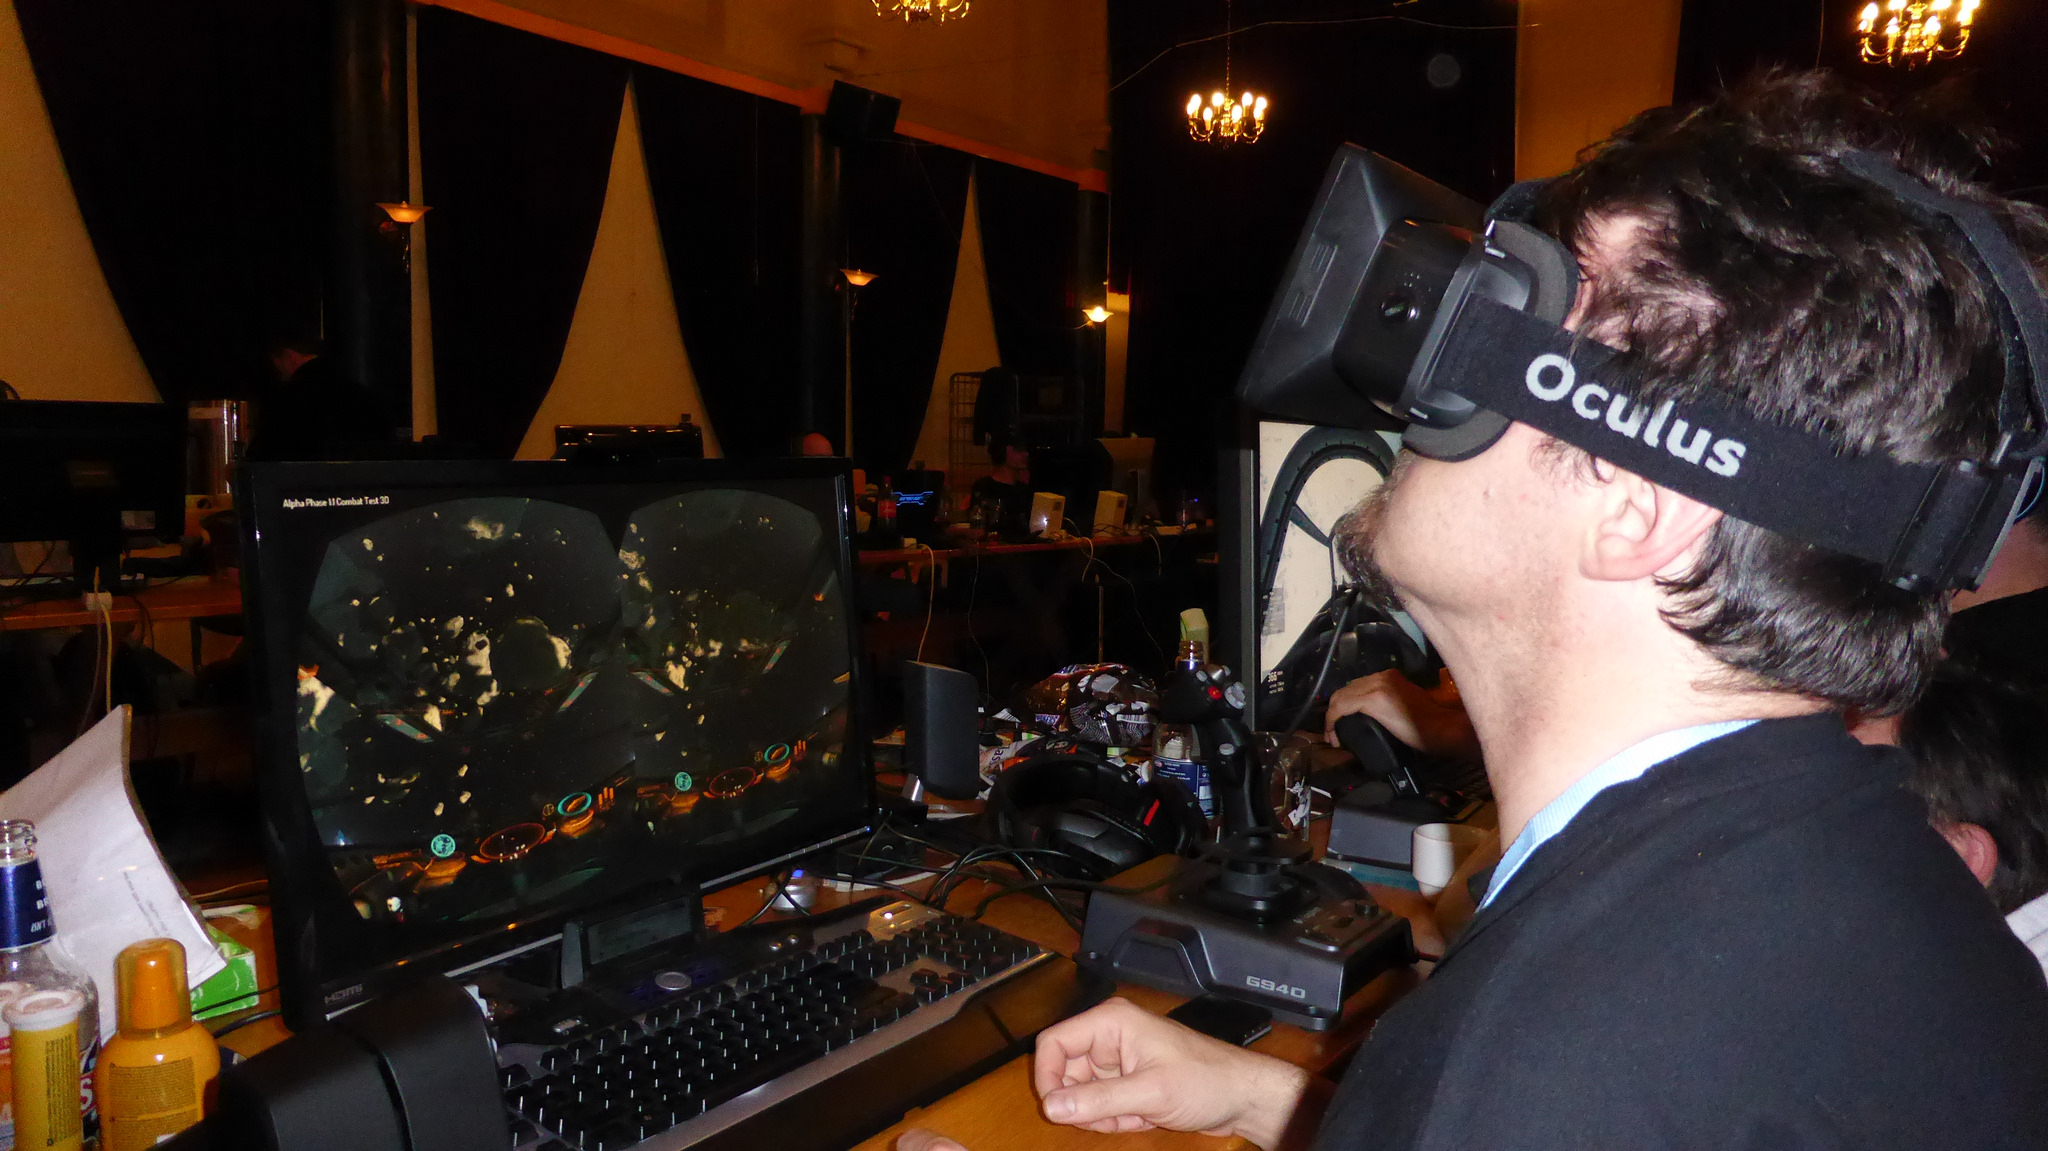 Playing Elite: Dangerous with the Oculus Rift.